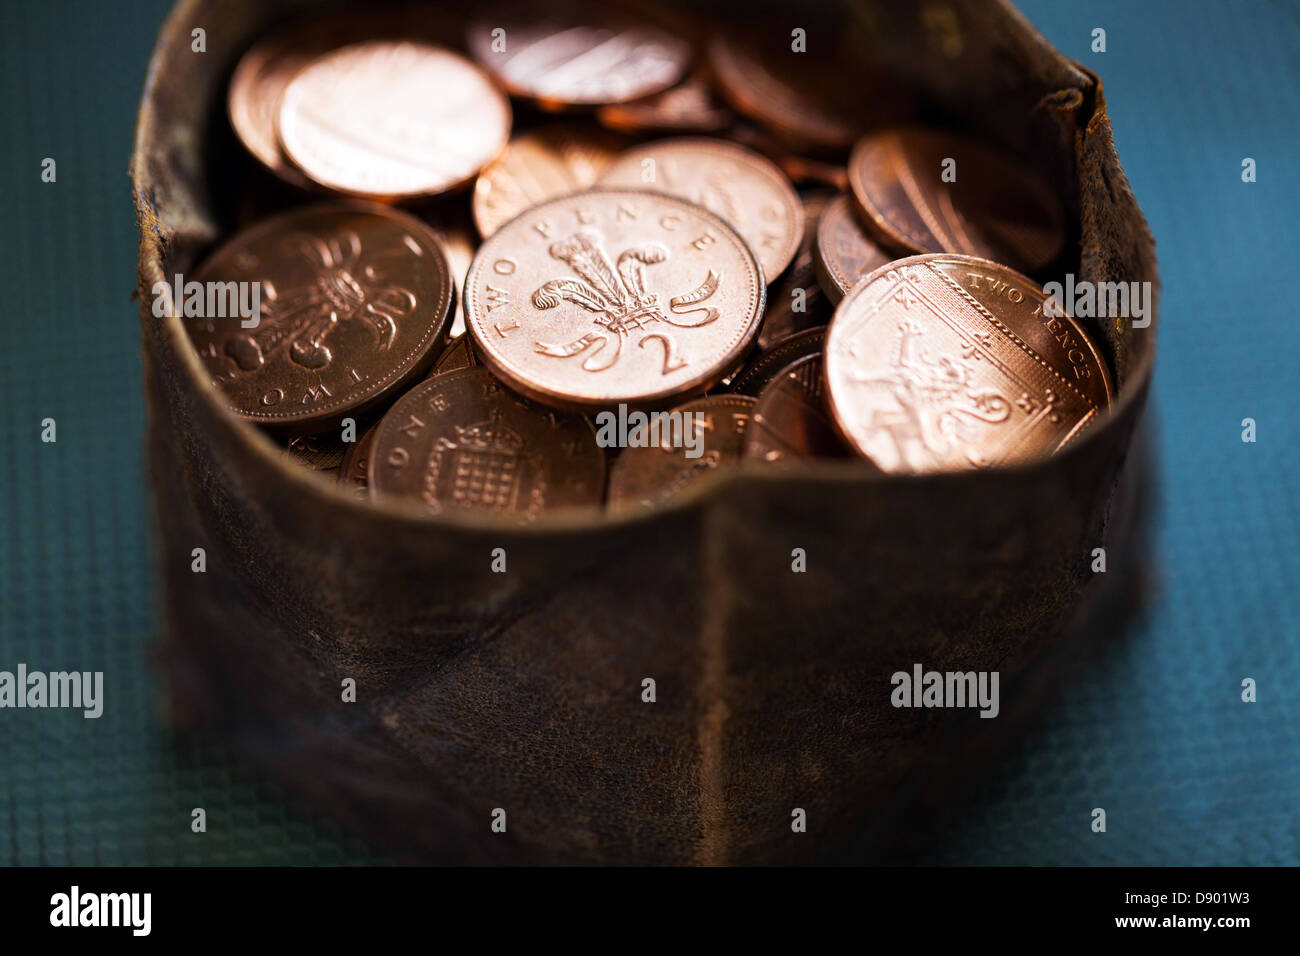 Small leather pouch full of two pence coins, London, England, UK - Stock Image